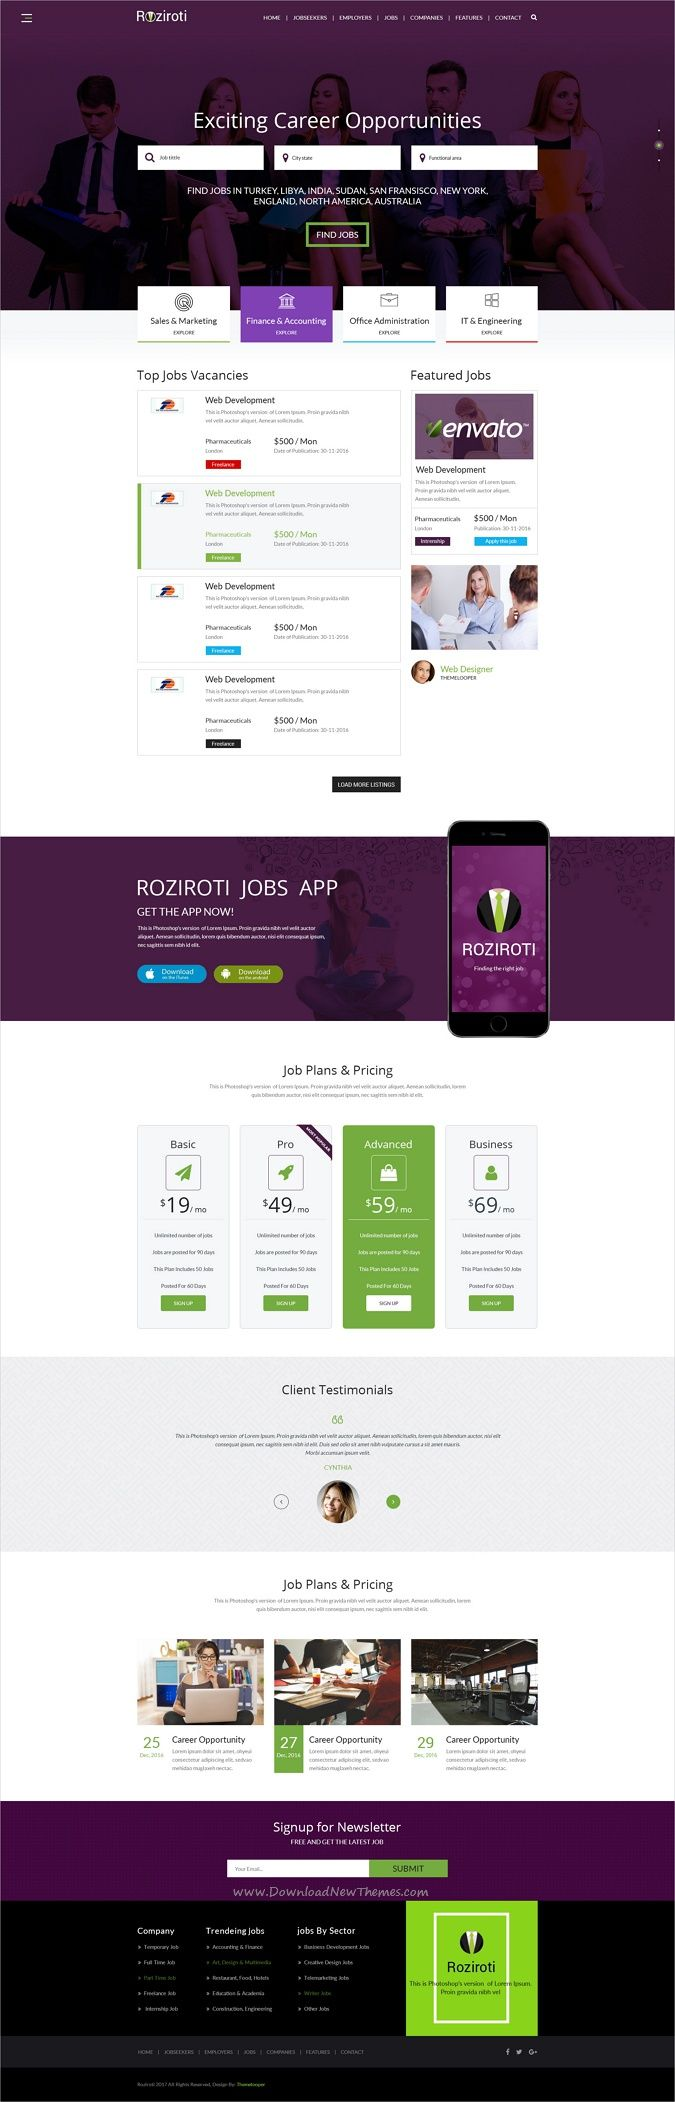 RoziRoti is professional #Photoshop template for #job #board portal websites download now➩  https://themeforest.net/item/rozi-roti-job-board-psd-template/19278986?ref=Datasata